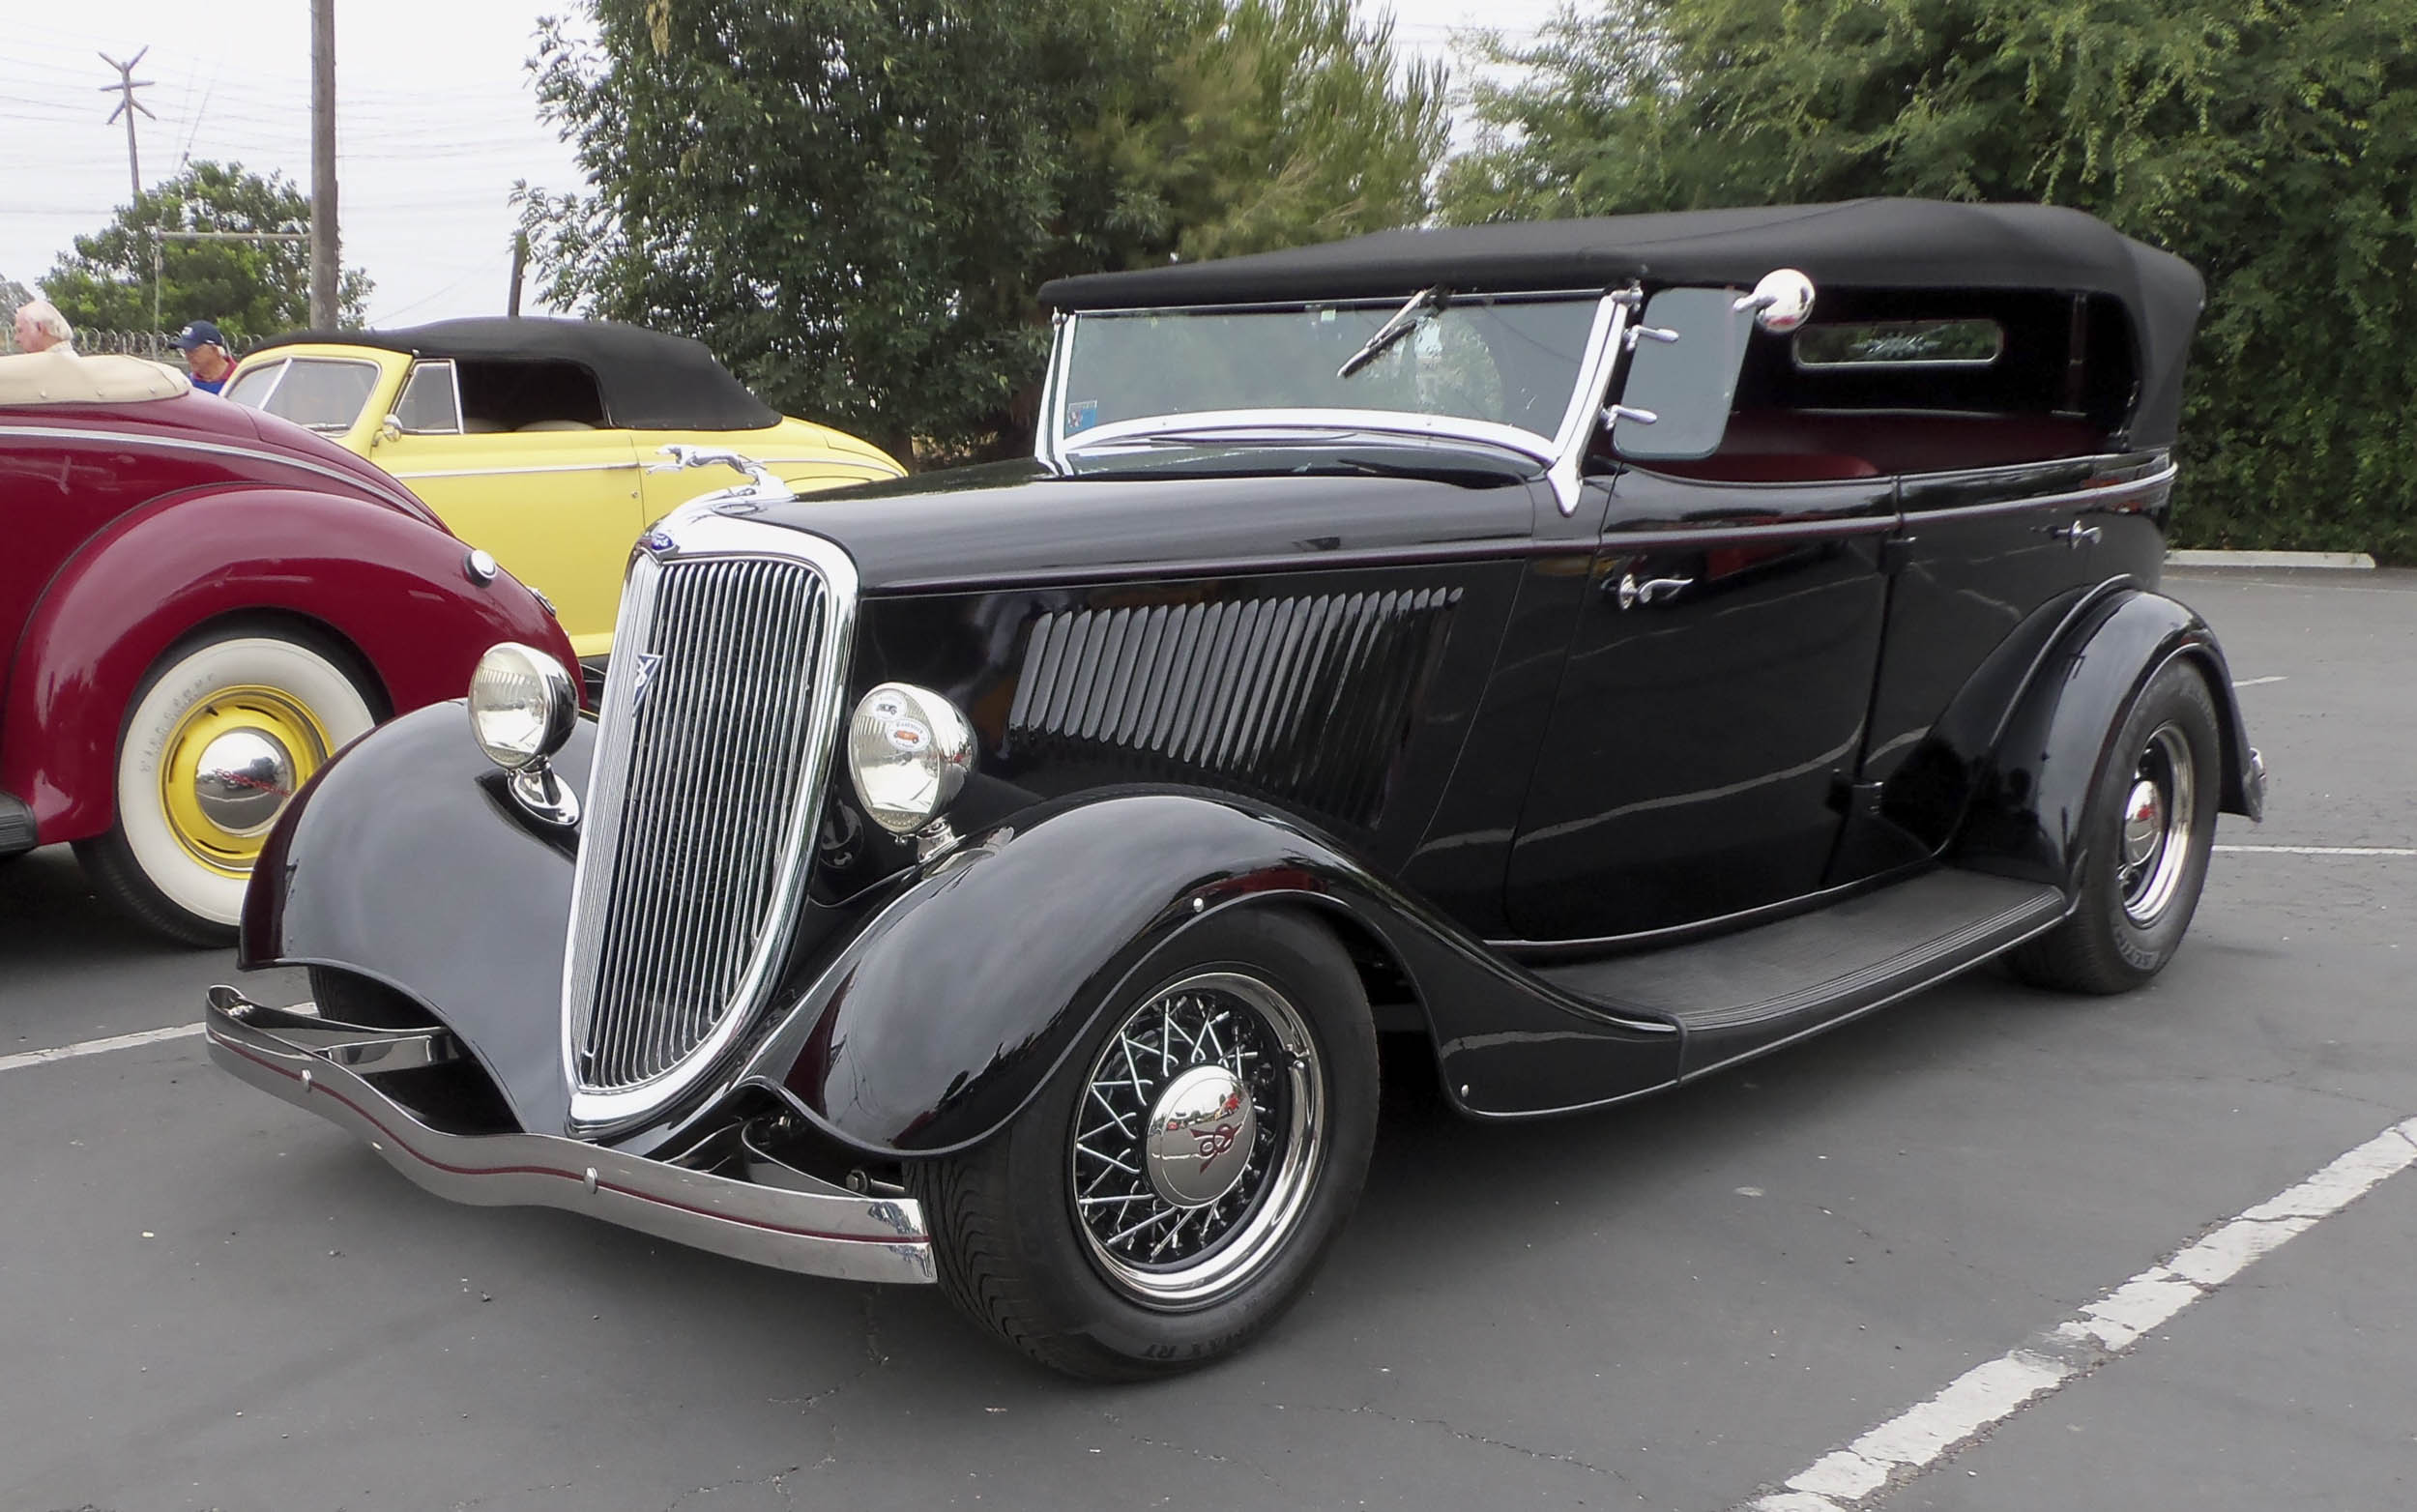 By 1934, the year this Ford phaeton was built, the whole open sedan segment was on a steep downslide. Just 3657 Ford V-8 phaetons were produced, which was slightly better than 1933's 2140, which included both V-8s and four-cylinder cars. Strangely, Australian 1933–34 Ford phaetons feature very similar bodies to their American counterparts, but share no body components as most of the inner structure is wood.